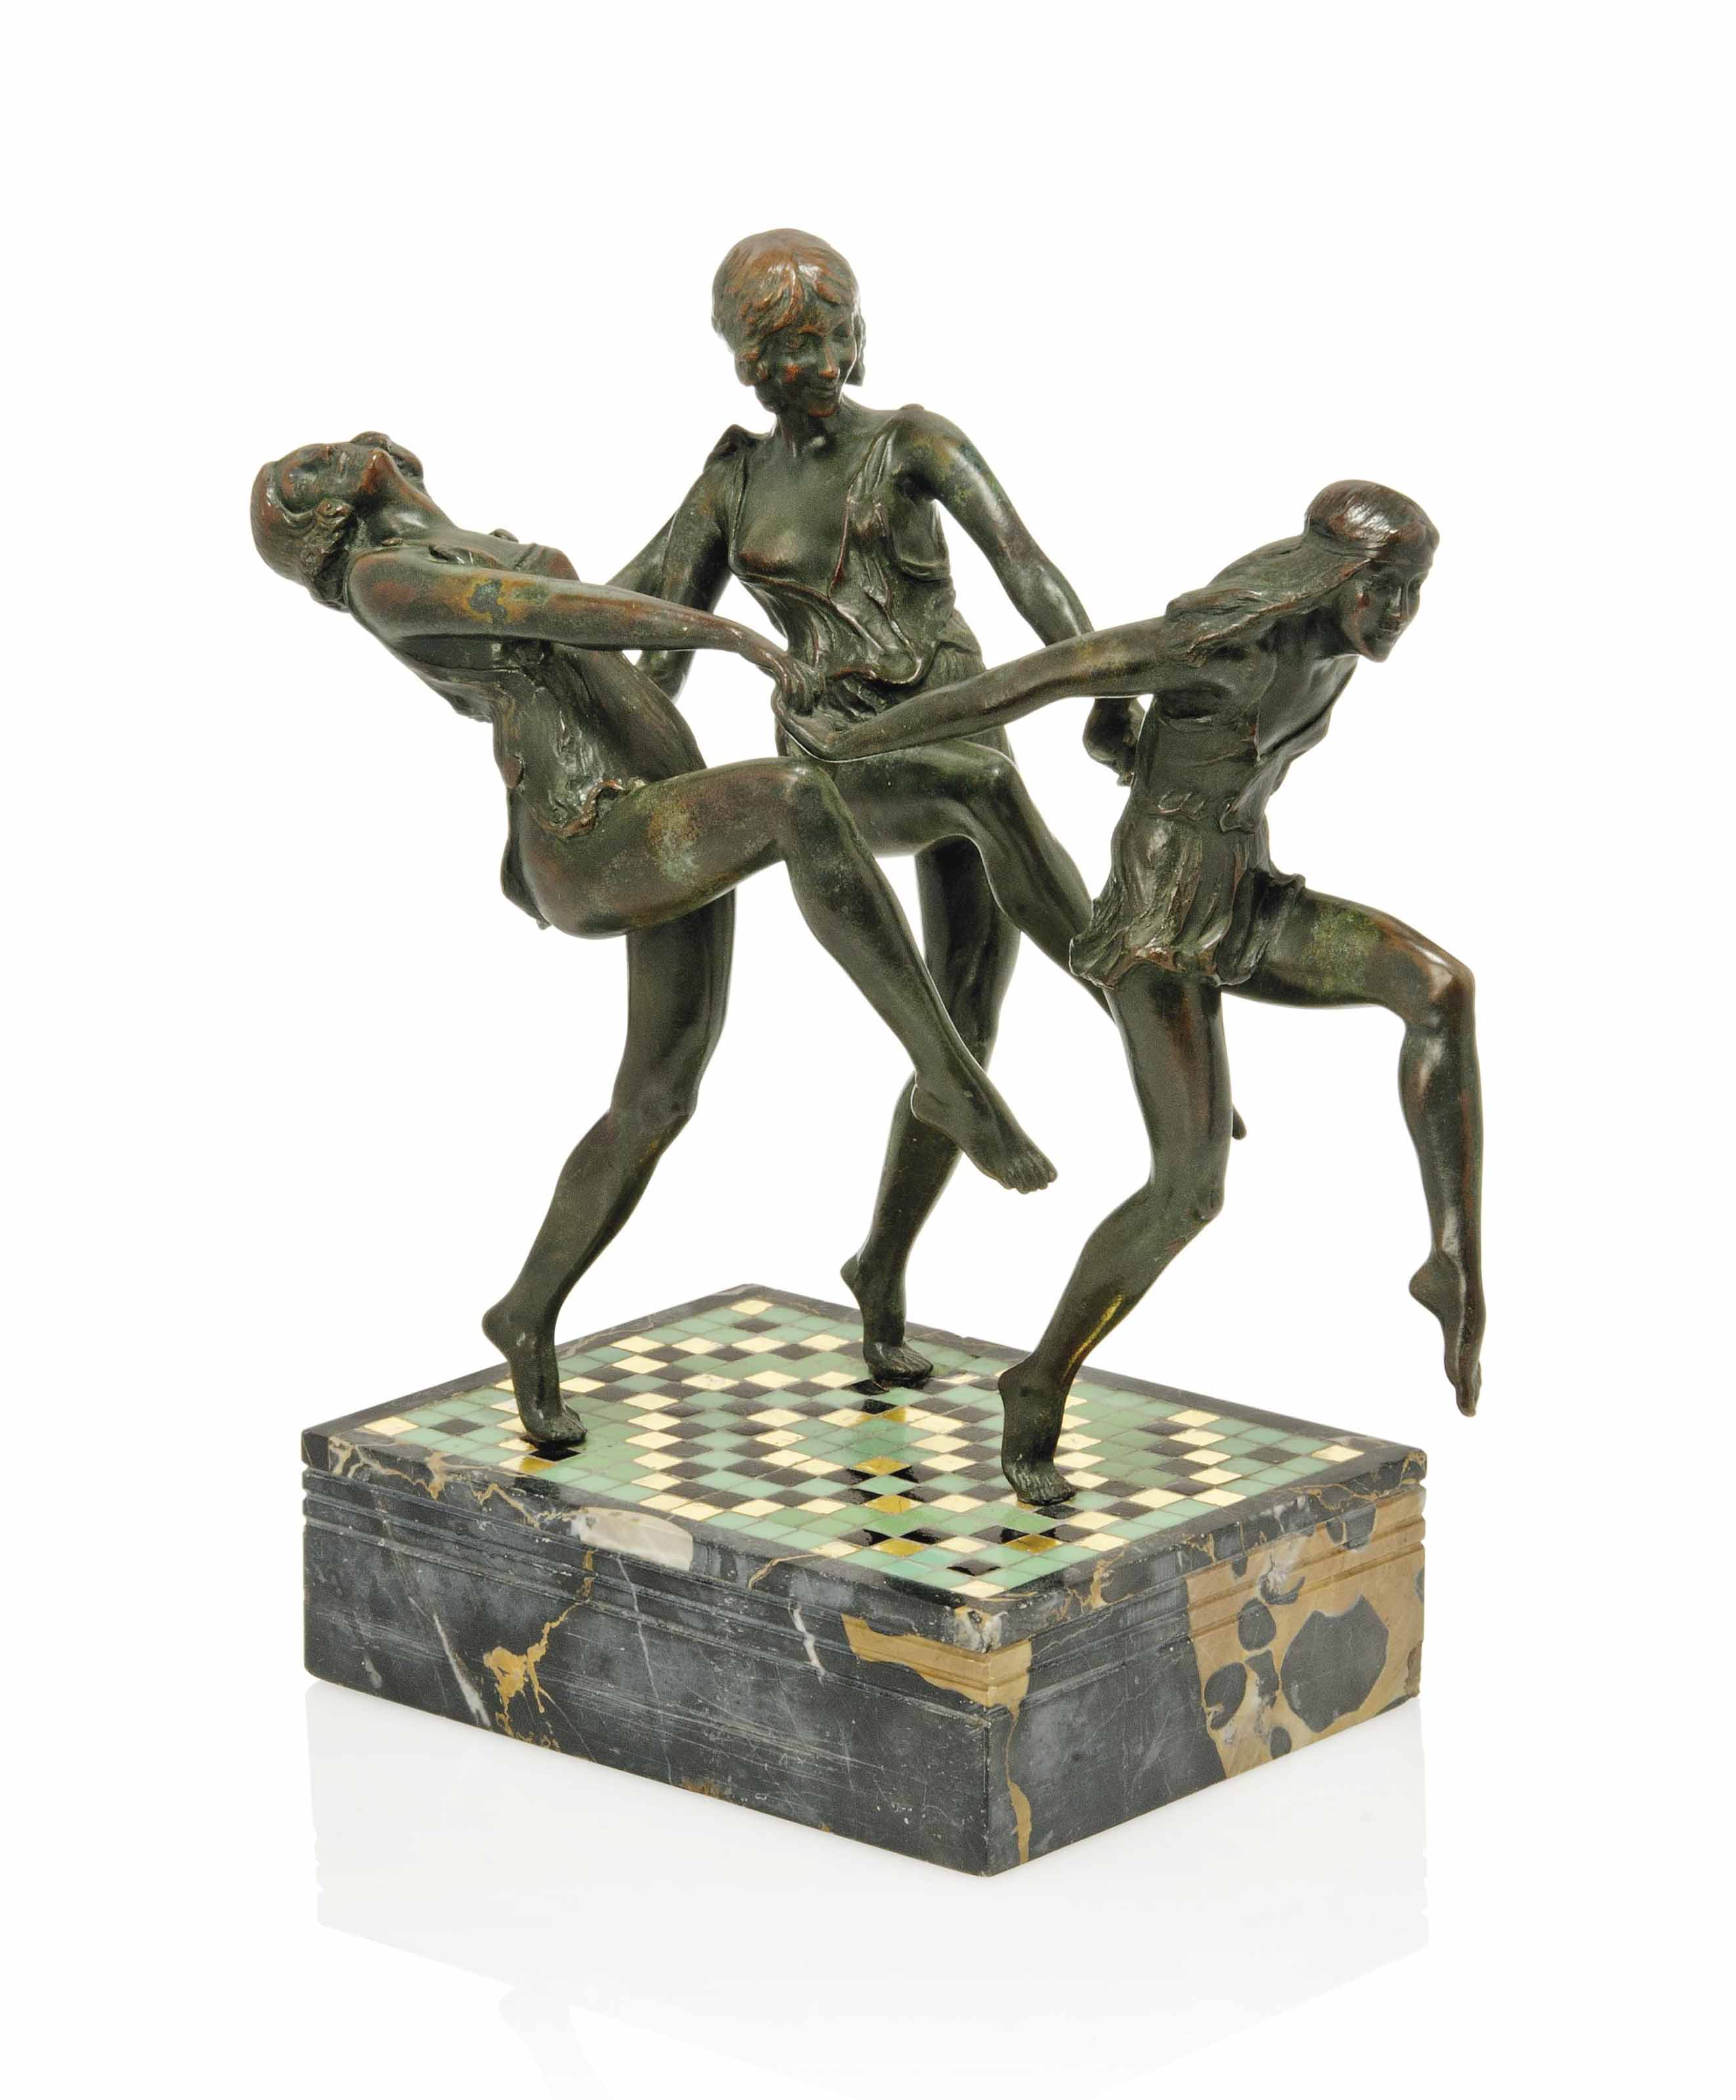 'THE DANCE', A PIERRE LE FAGUAYS COLD-PAINTED BRONZE GROUP